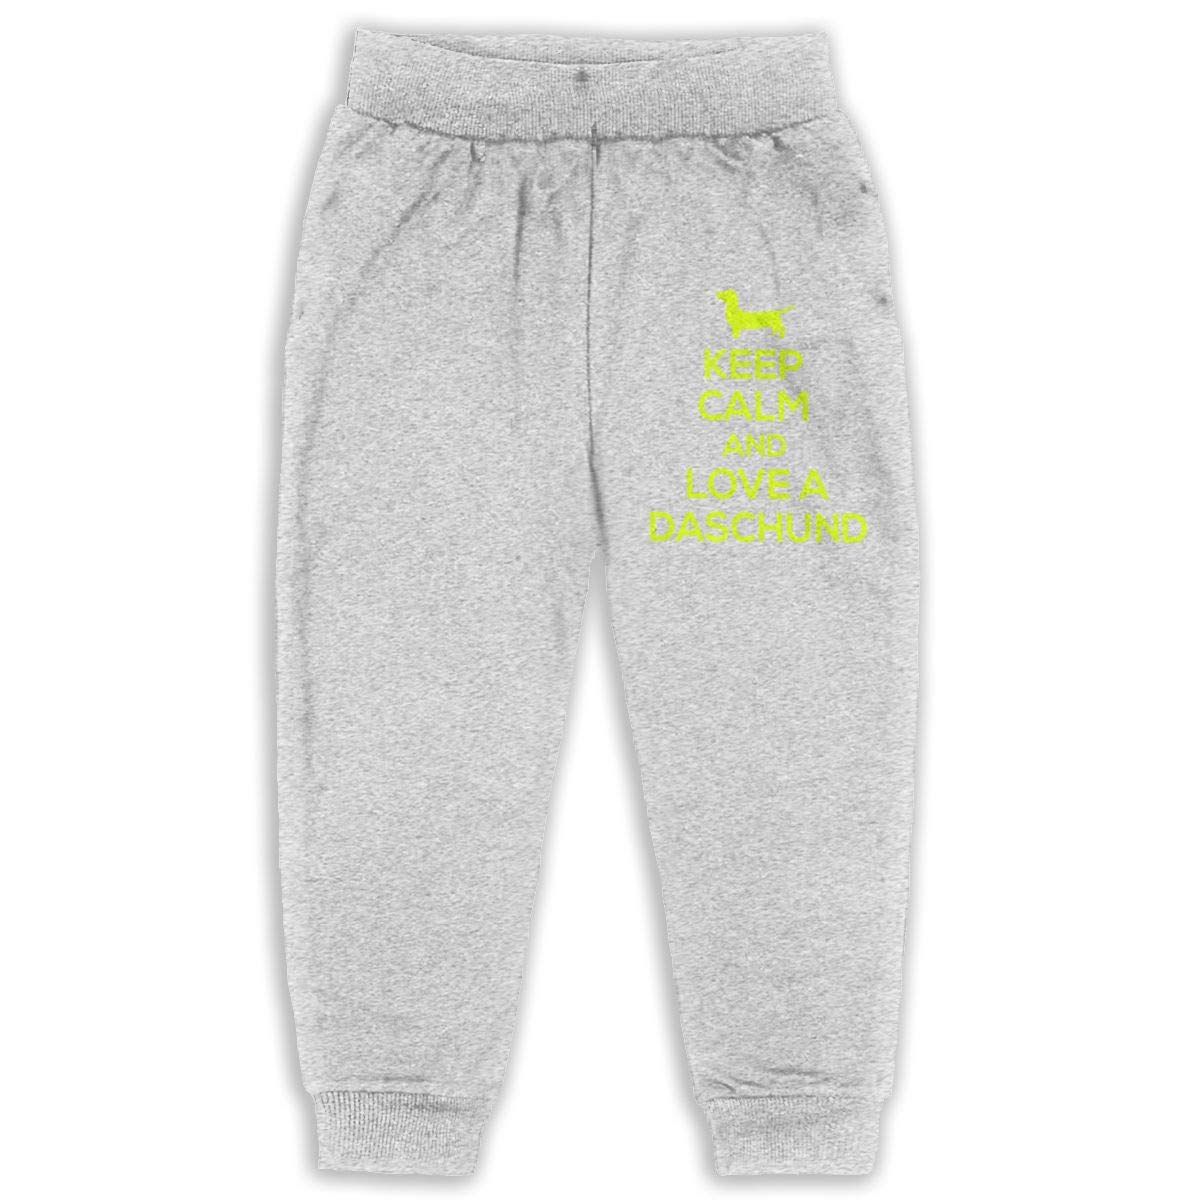 Black JAWANNA Keep Calm and Love Daschunds Boys Cotton Sweatpants 2-6 Years Age 2T-6T